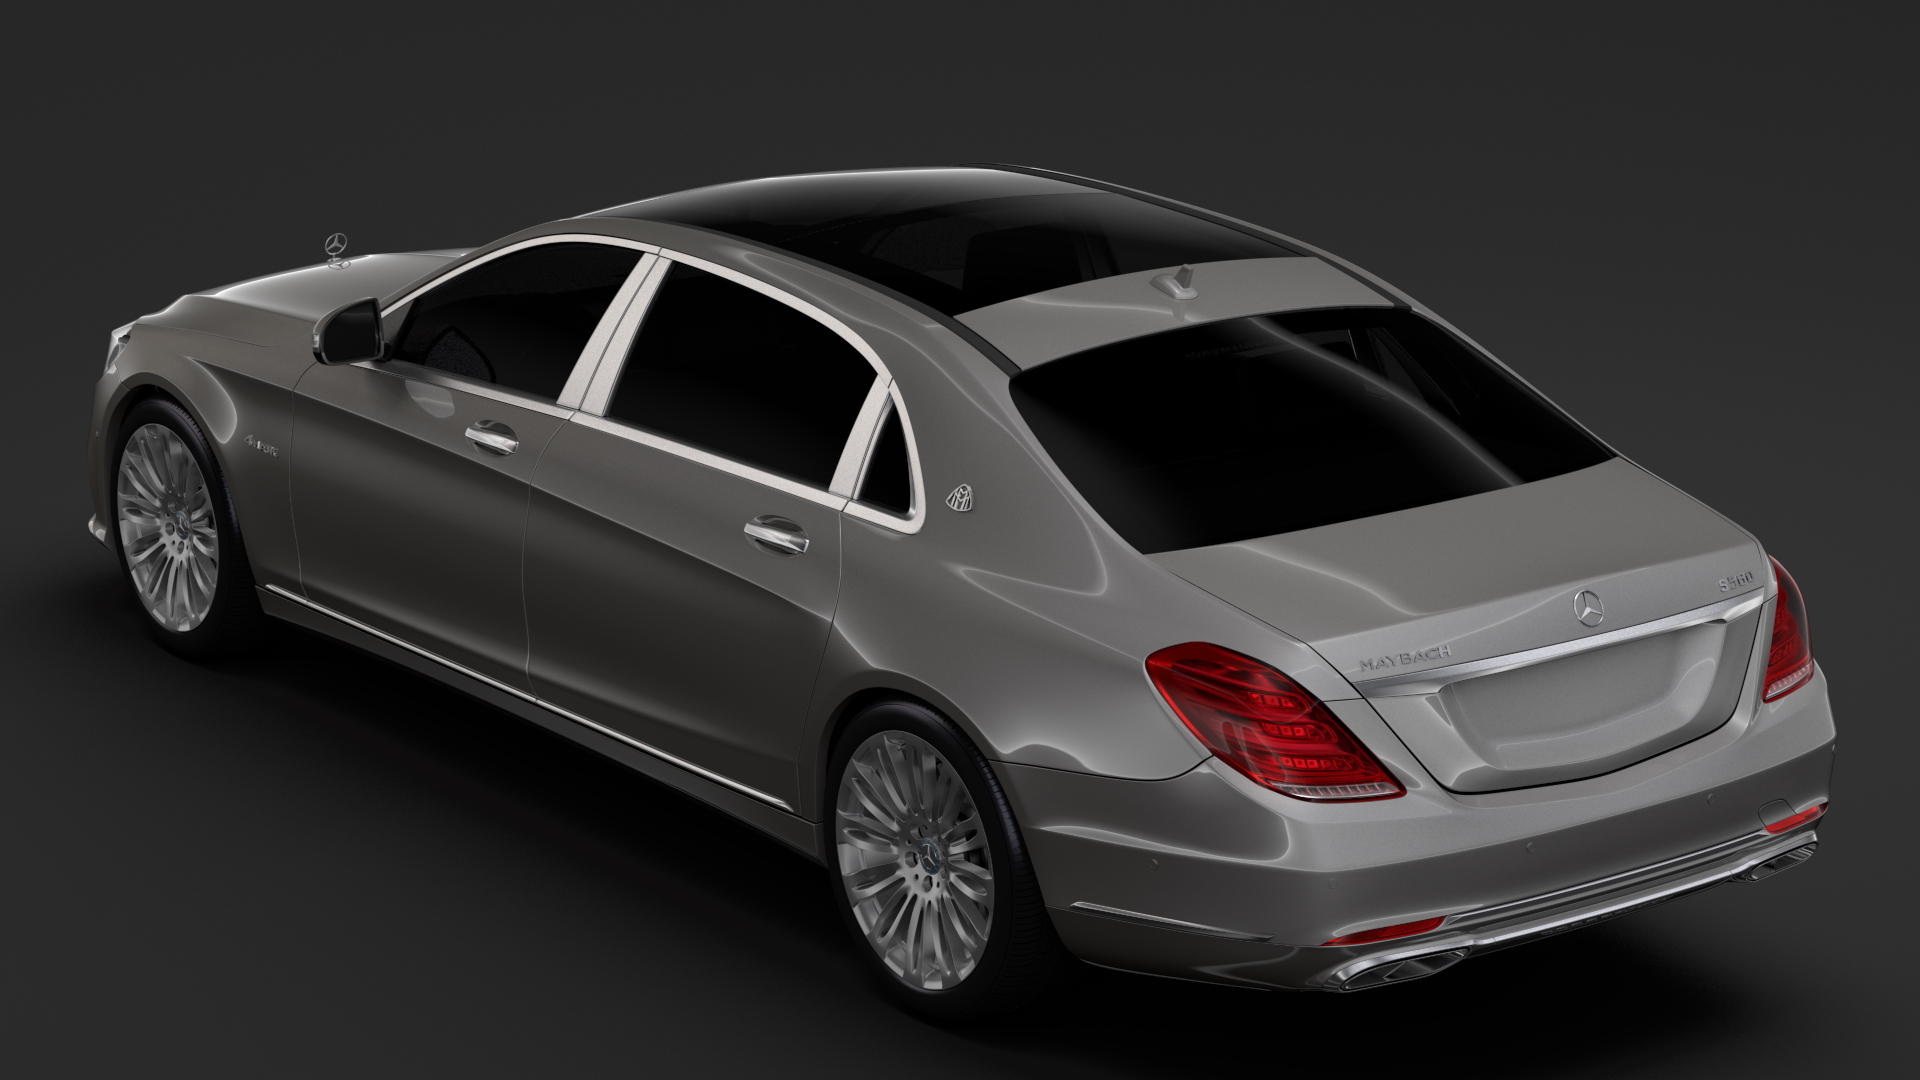 mercedes maybach s 560 4matic x222 2018 3d model 3ds max fbx c4d lwo ma mb hrc xsi obj 284434